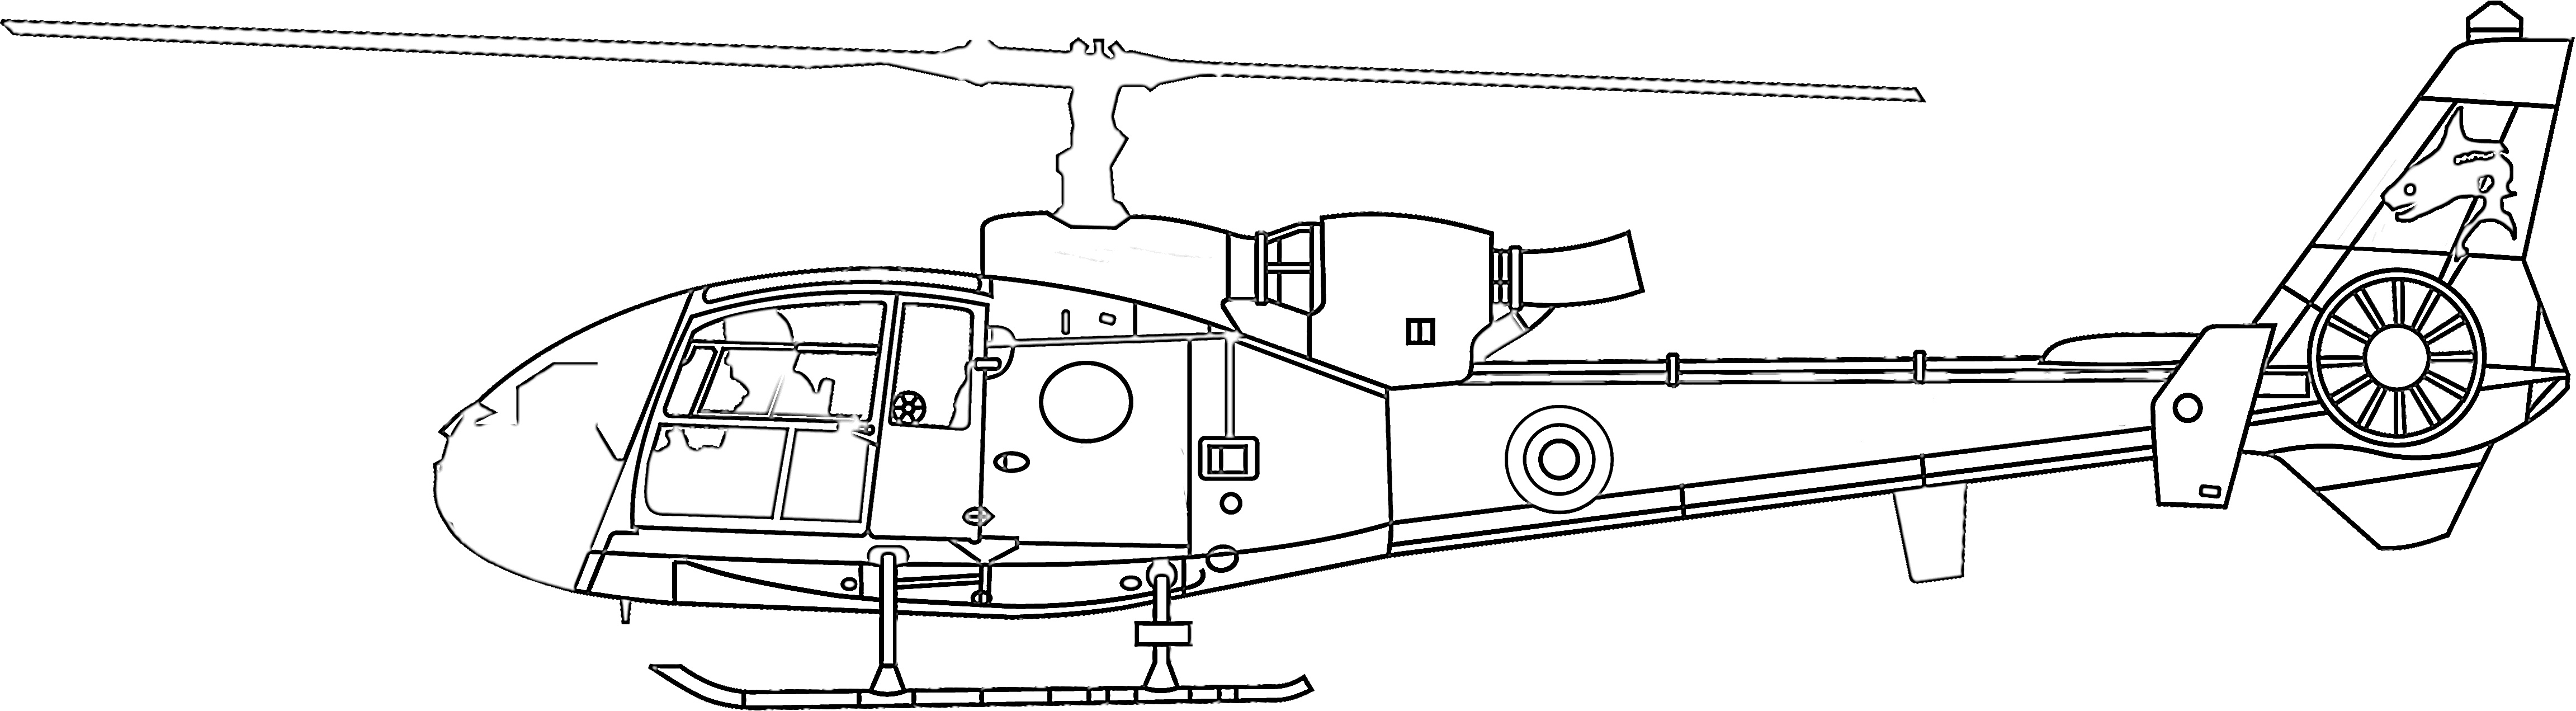 Rescue helicopter coloring page